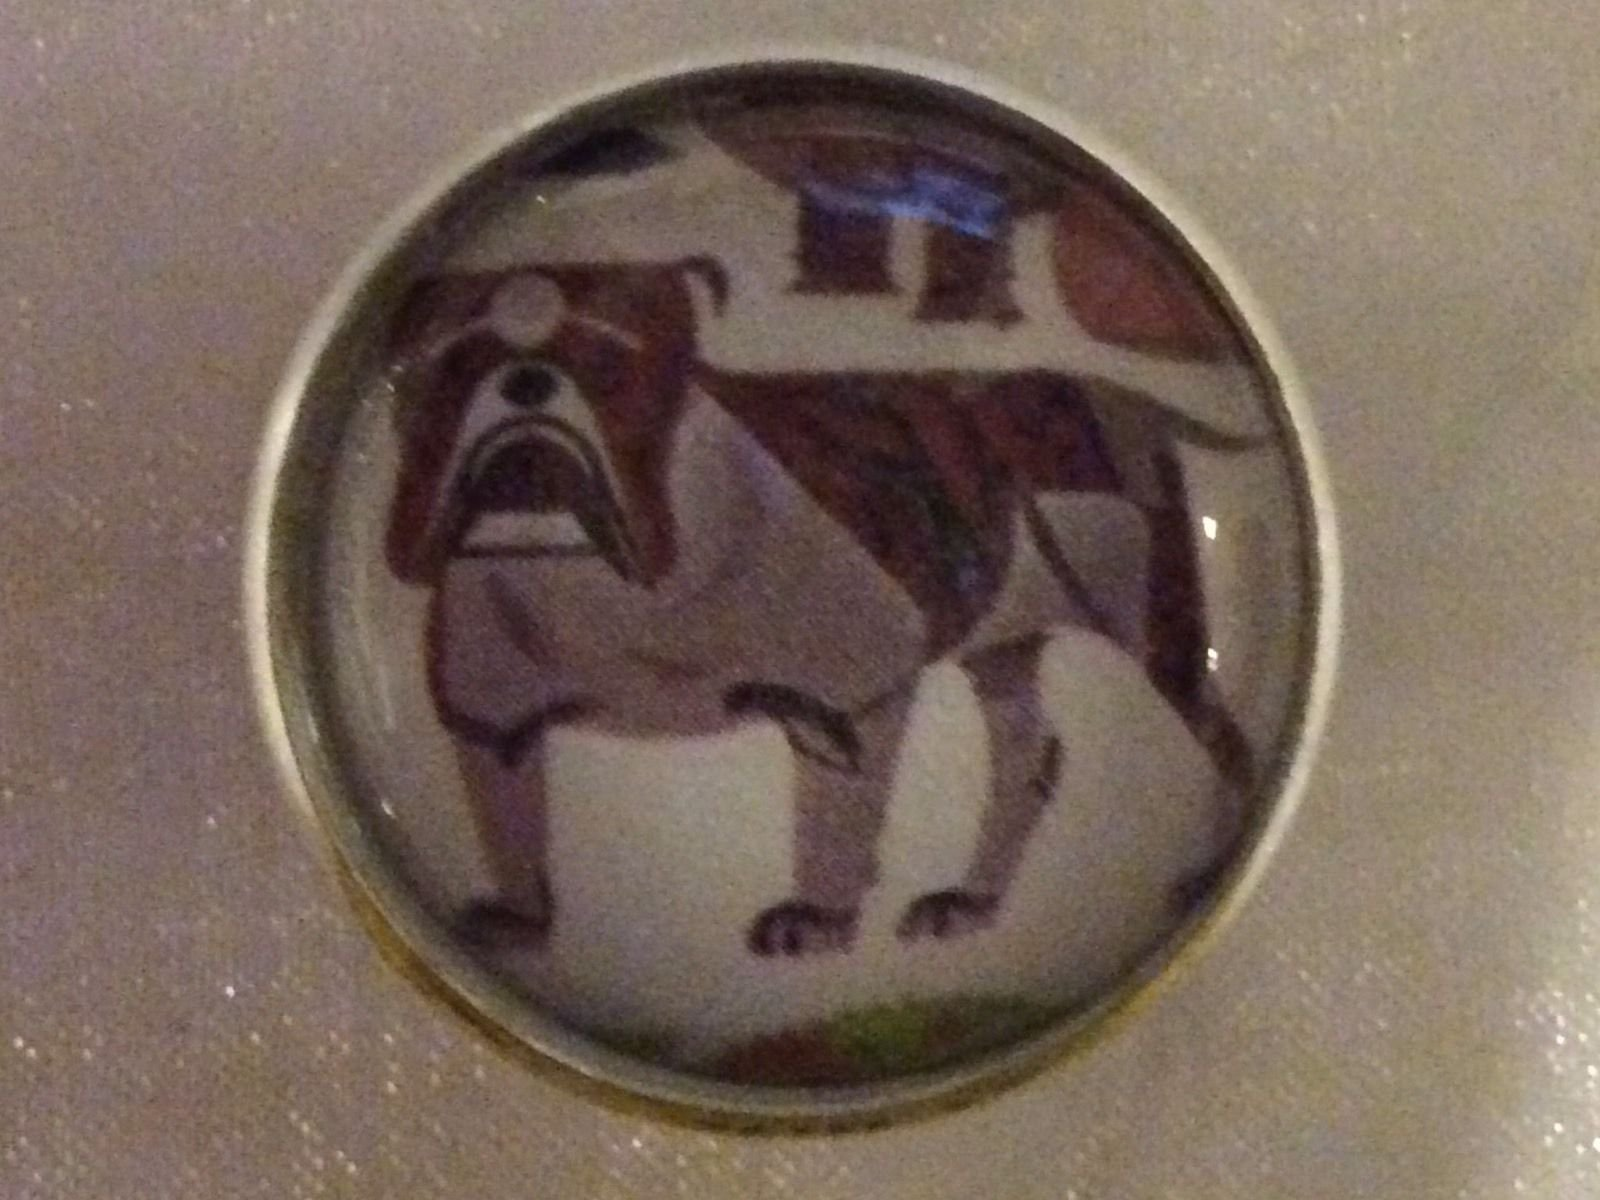 Charley Harper Bulldog Puppy Dog Sewing Button 1 Mid Century Mod Charles HA102